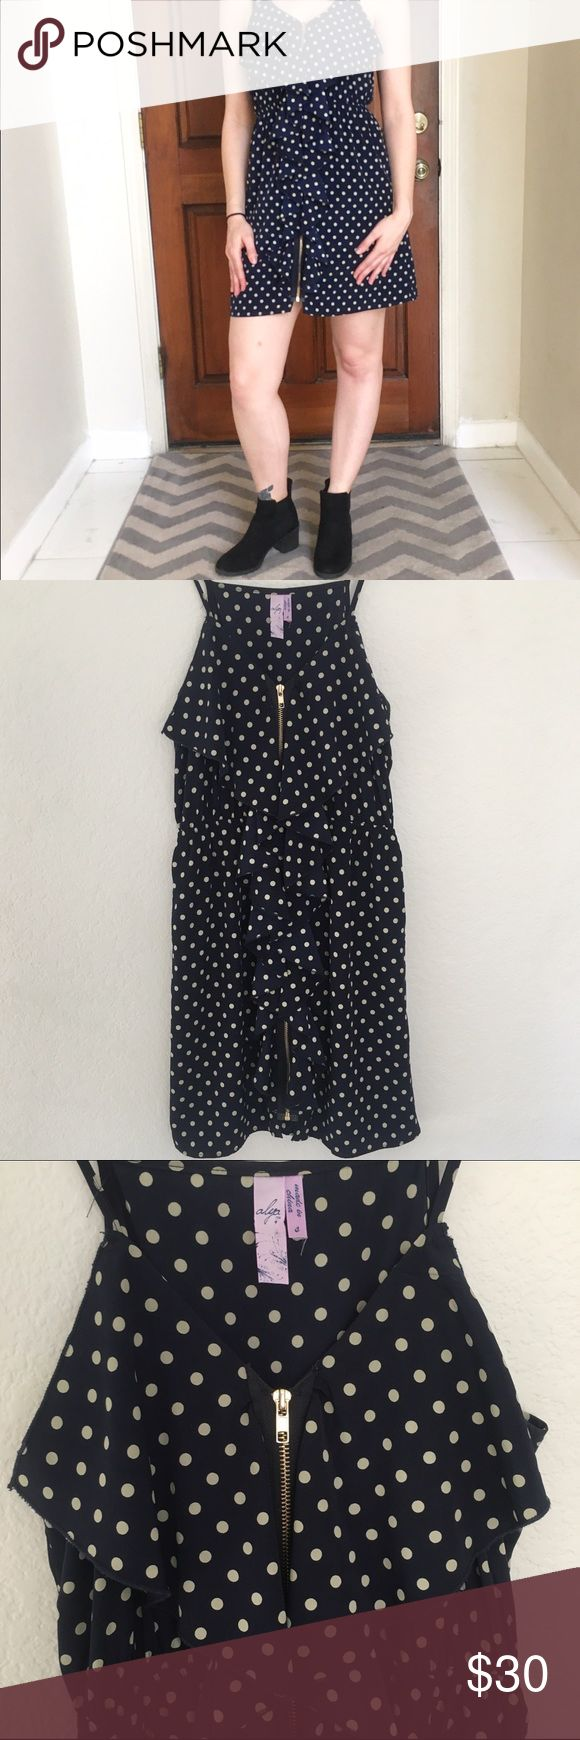 Francesca's Navy Blue Polka Dot Zip Up Dress Francesca Navy Blue and Cream Colored Polka Dot Zip Up Dress. Size Small. Has slight Ruffle detail down the front of the dress. Like new, hardly worn. Francesca's Collections Dresses Mini